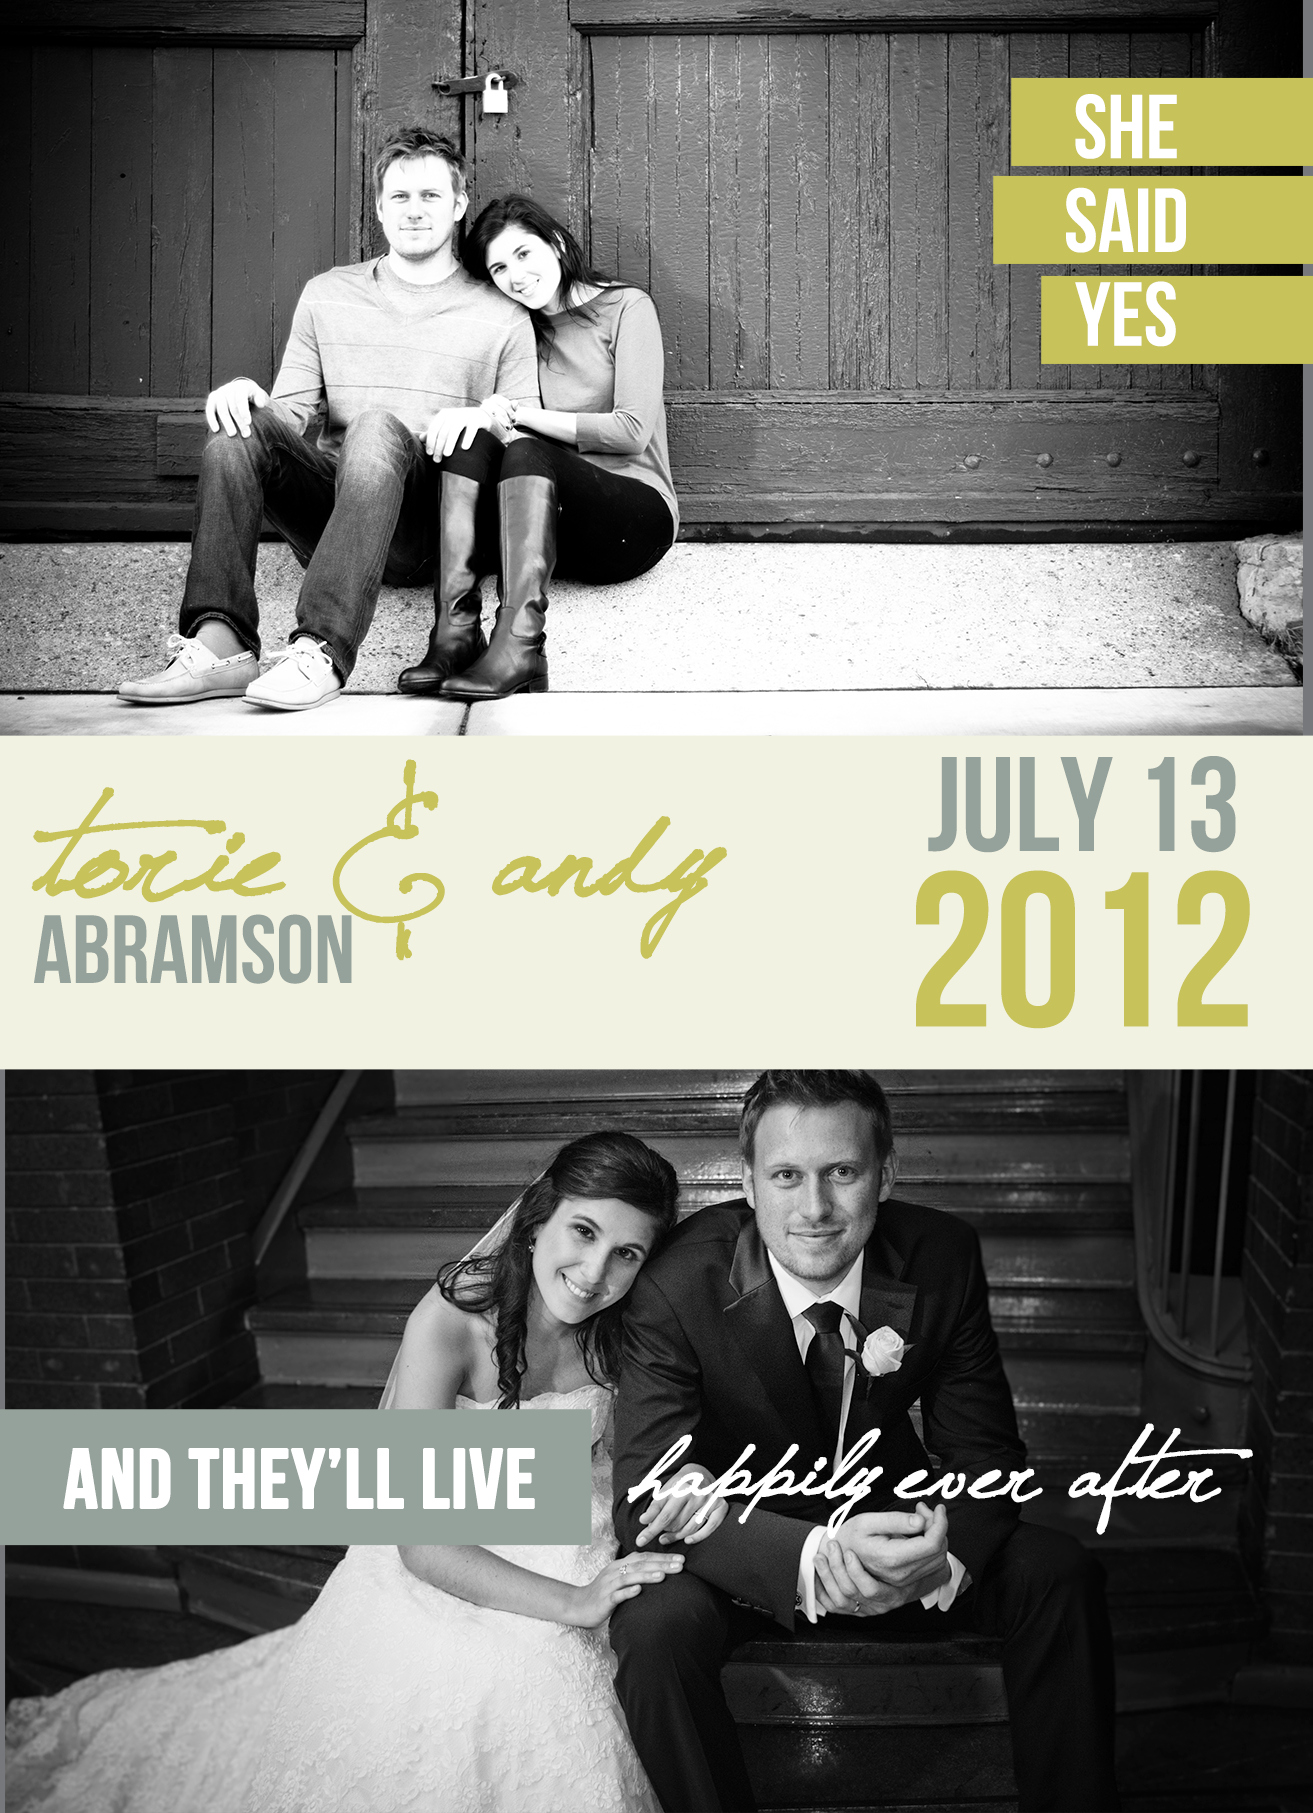 abramson_wedding-announcement.png